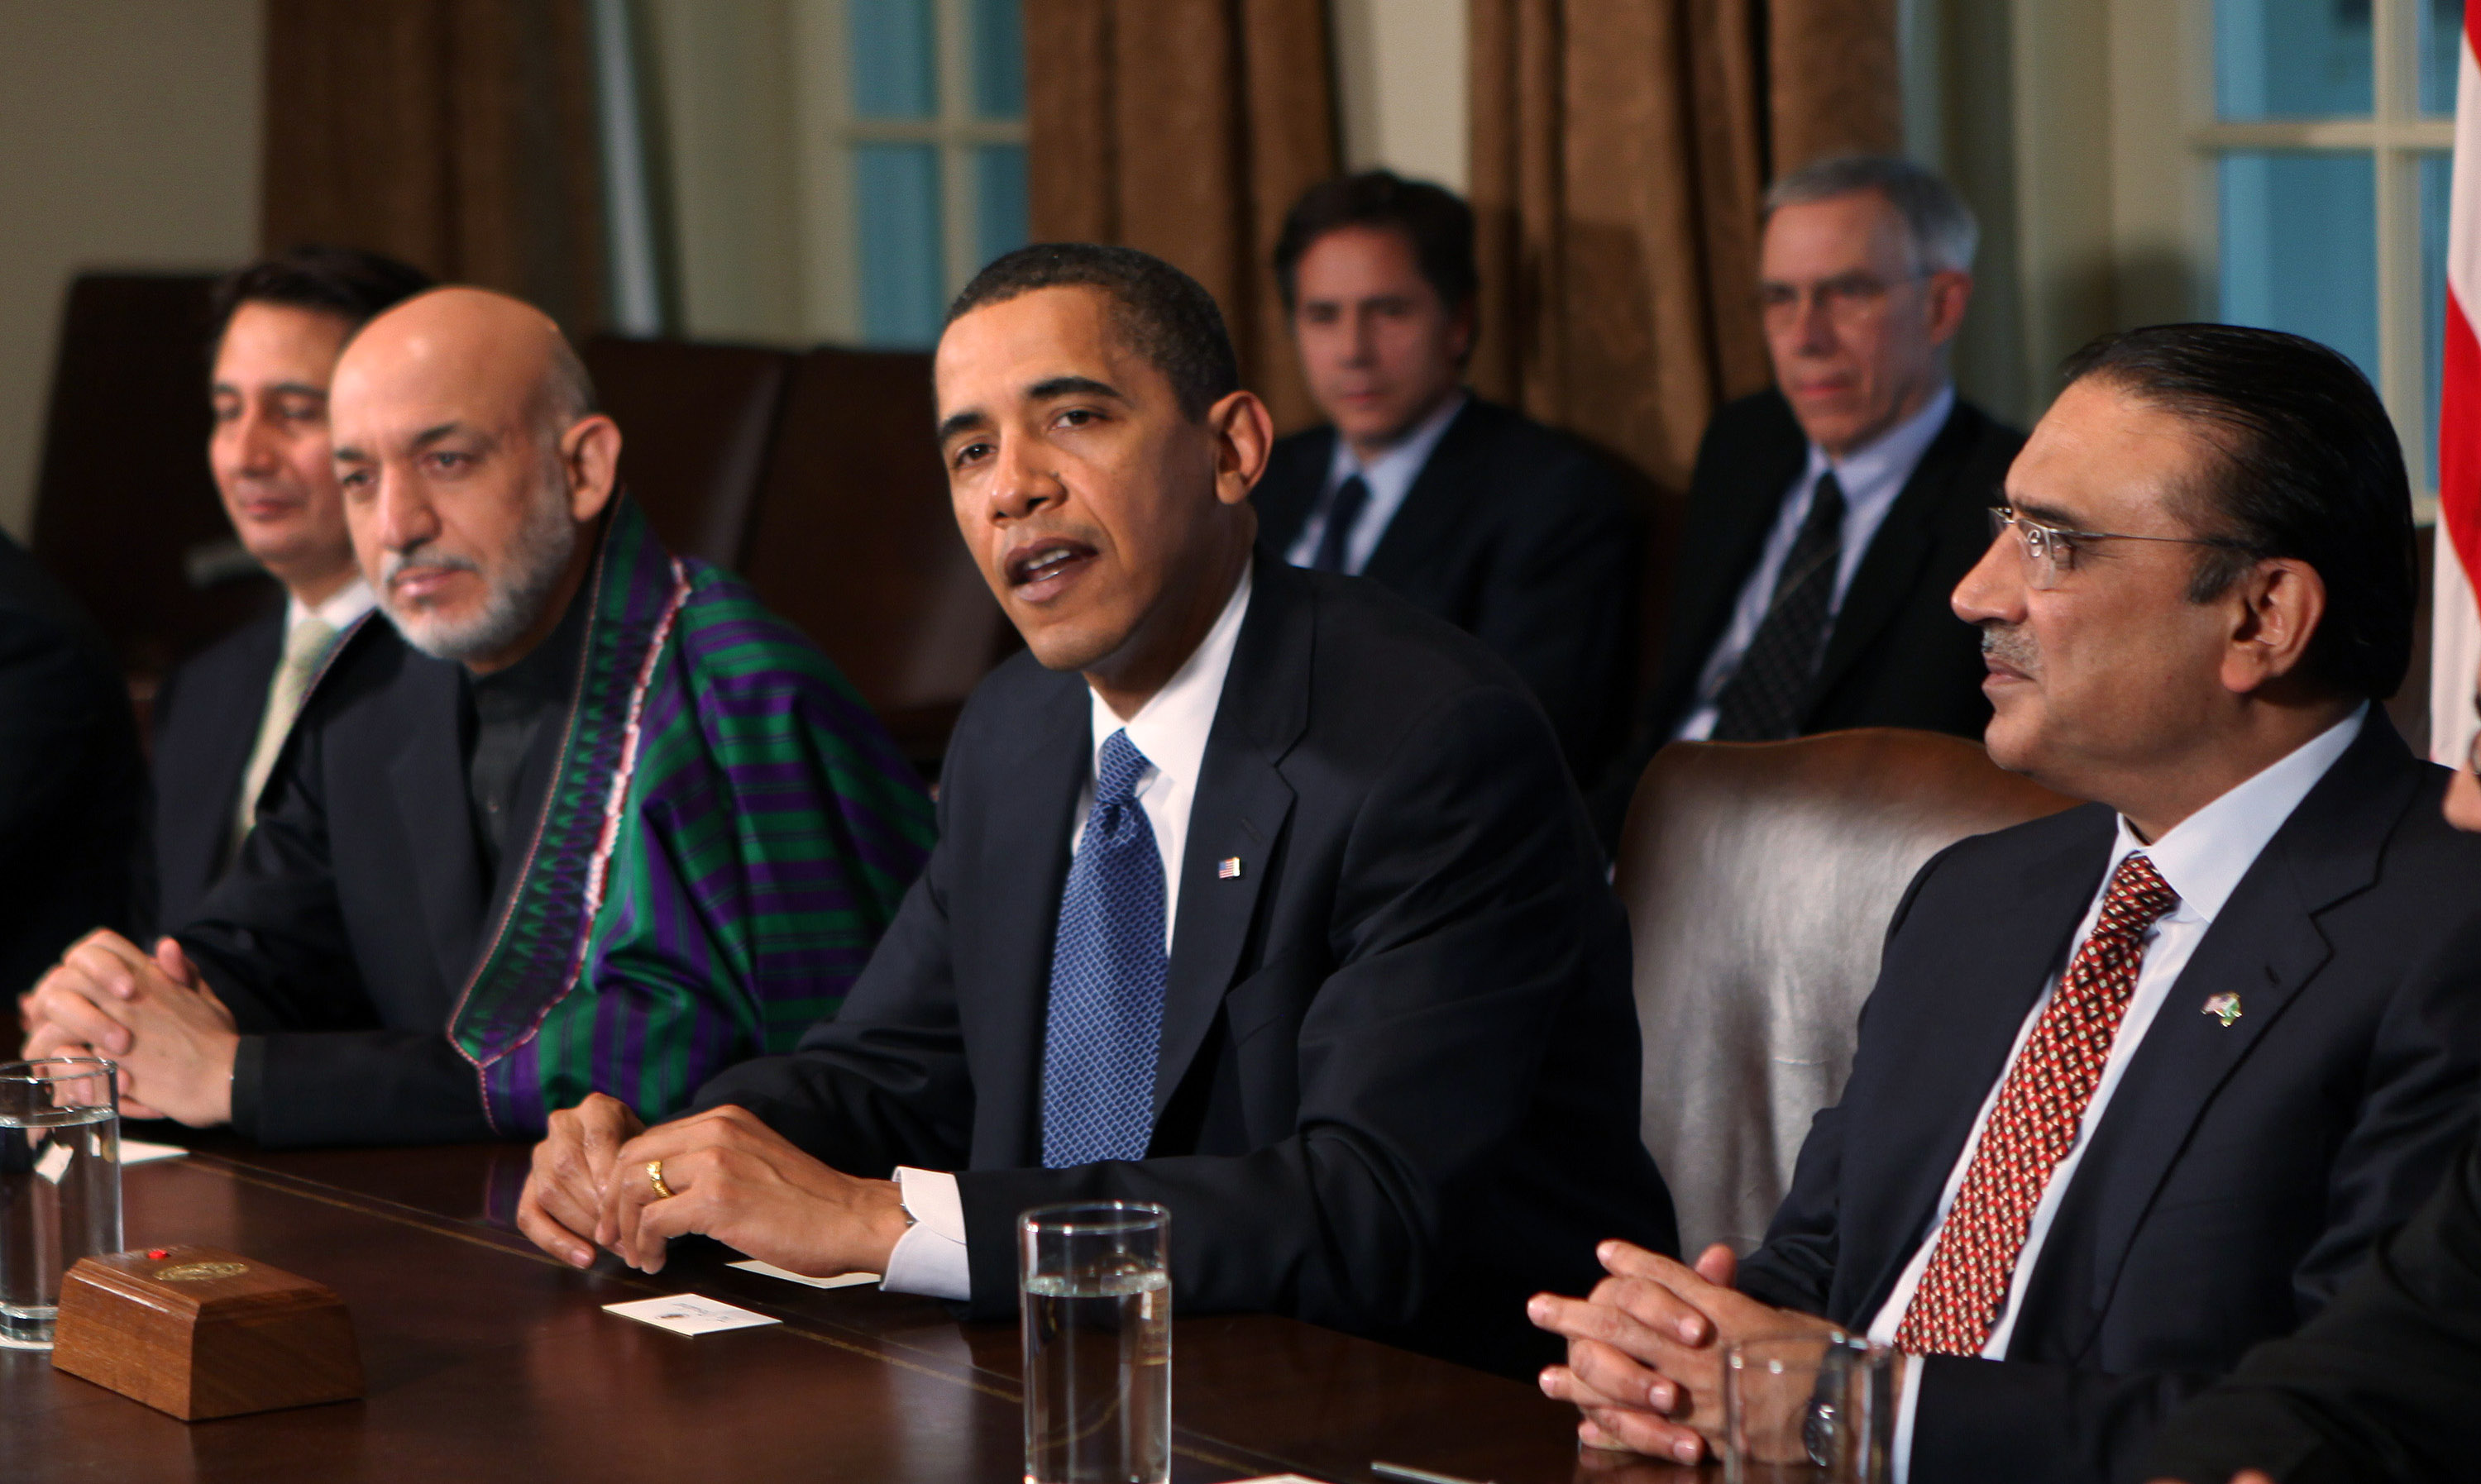 U.S. President Barack Obama meets with the President of Afghanistan Hamid Karzai and the President of  Pakistan Asif Zardari in the Cabinet Room of the White House on May 6, 2009 in Washington, DC. The talks centered on how the unstable governments in Afghanistan and Pakistan can work with the United States to crack down on the Taliban insurgency.